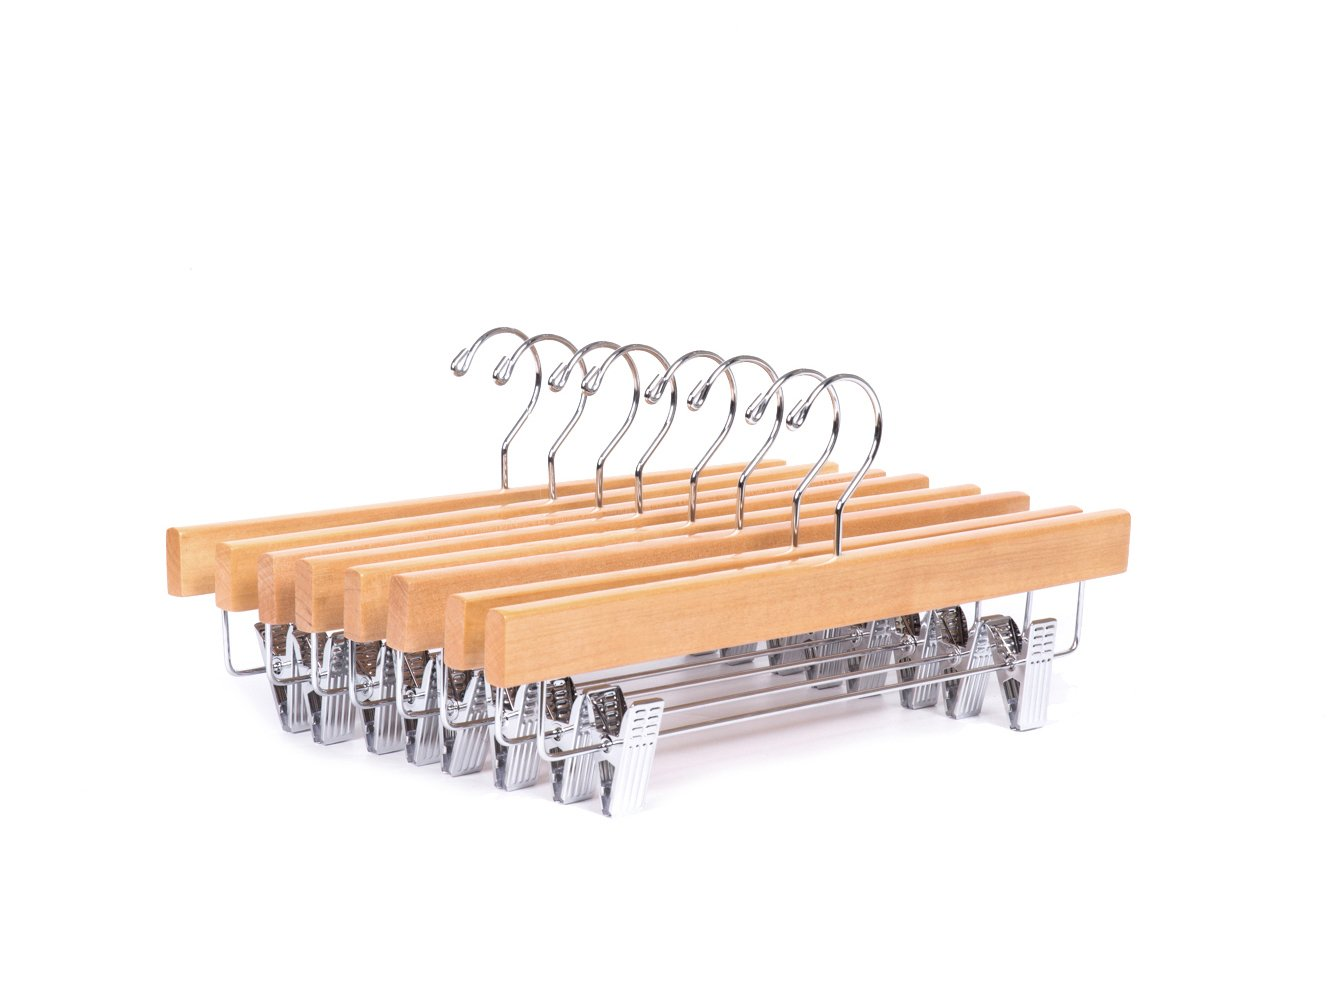 Amber Home 24 Pack Solid Gugertree Deluxe Wooden Pants Hangers Bottom Hanger Jeans Hanger Skirt Hanger with 2-Adjustable Clips (Natural, 24) by Amber Home